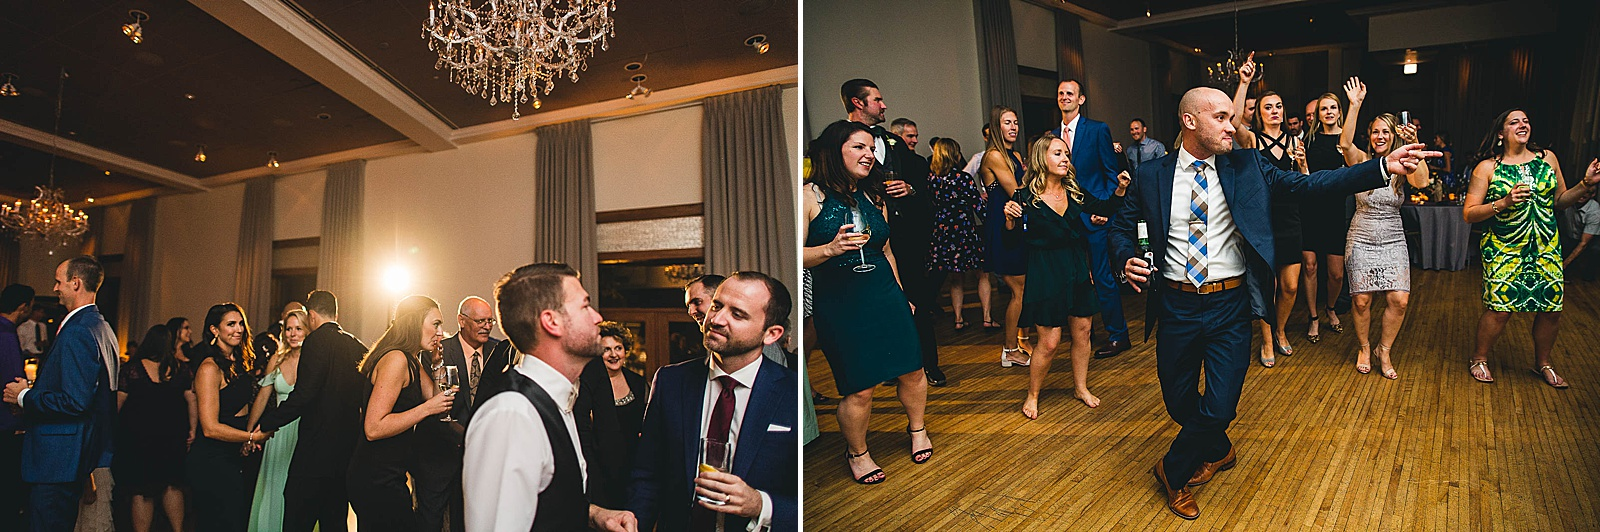 57 ivy room chicago reception pics - Ivy Room Chicago Wedding Photos // Bethany + Anthony